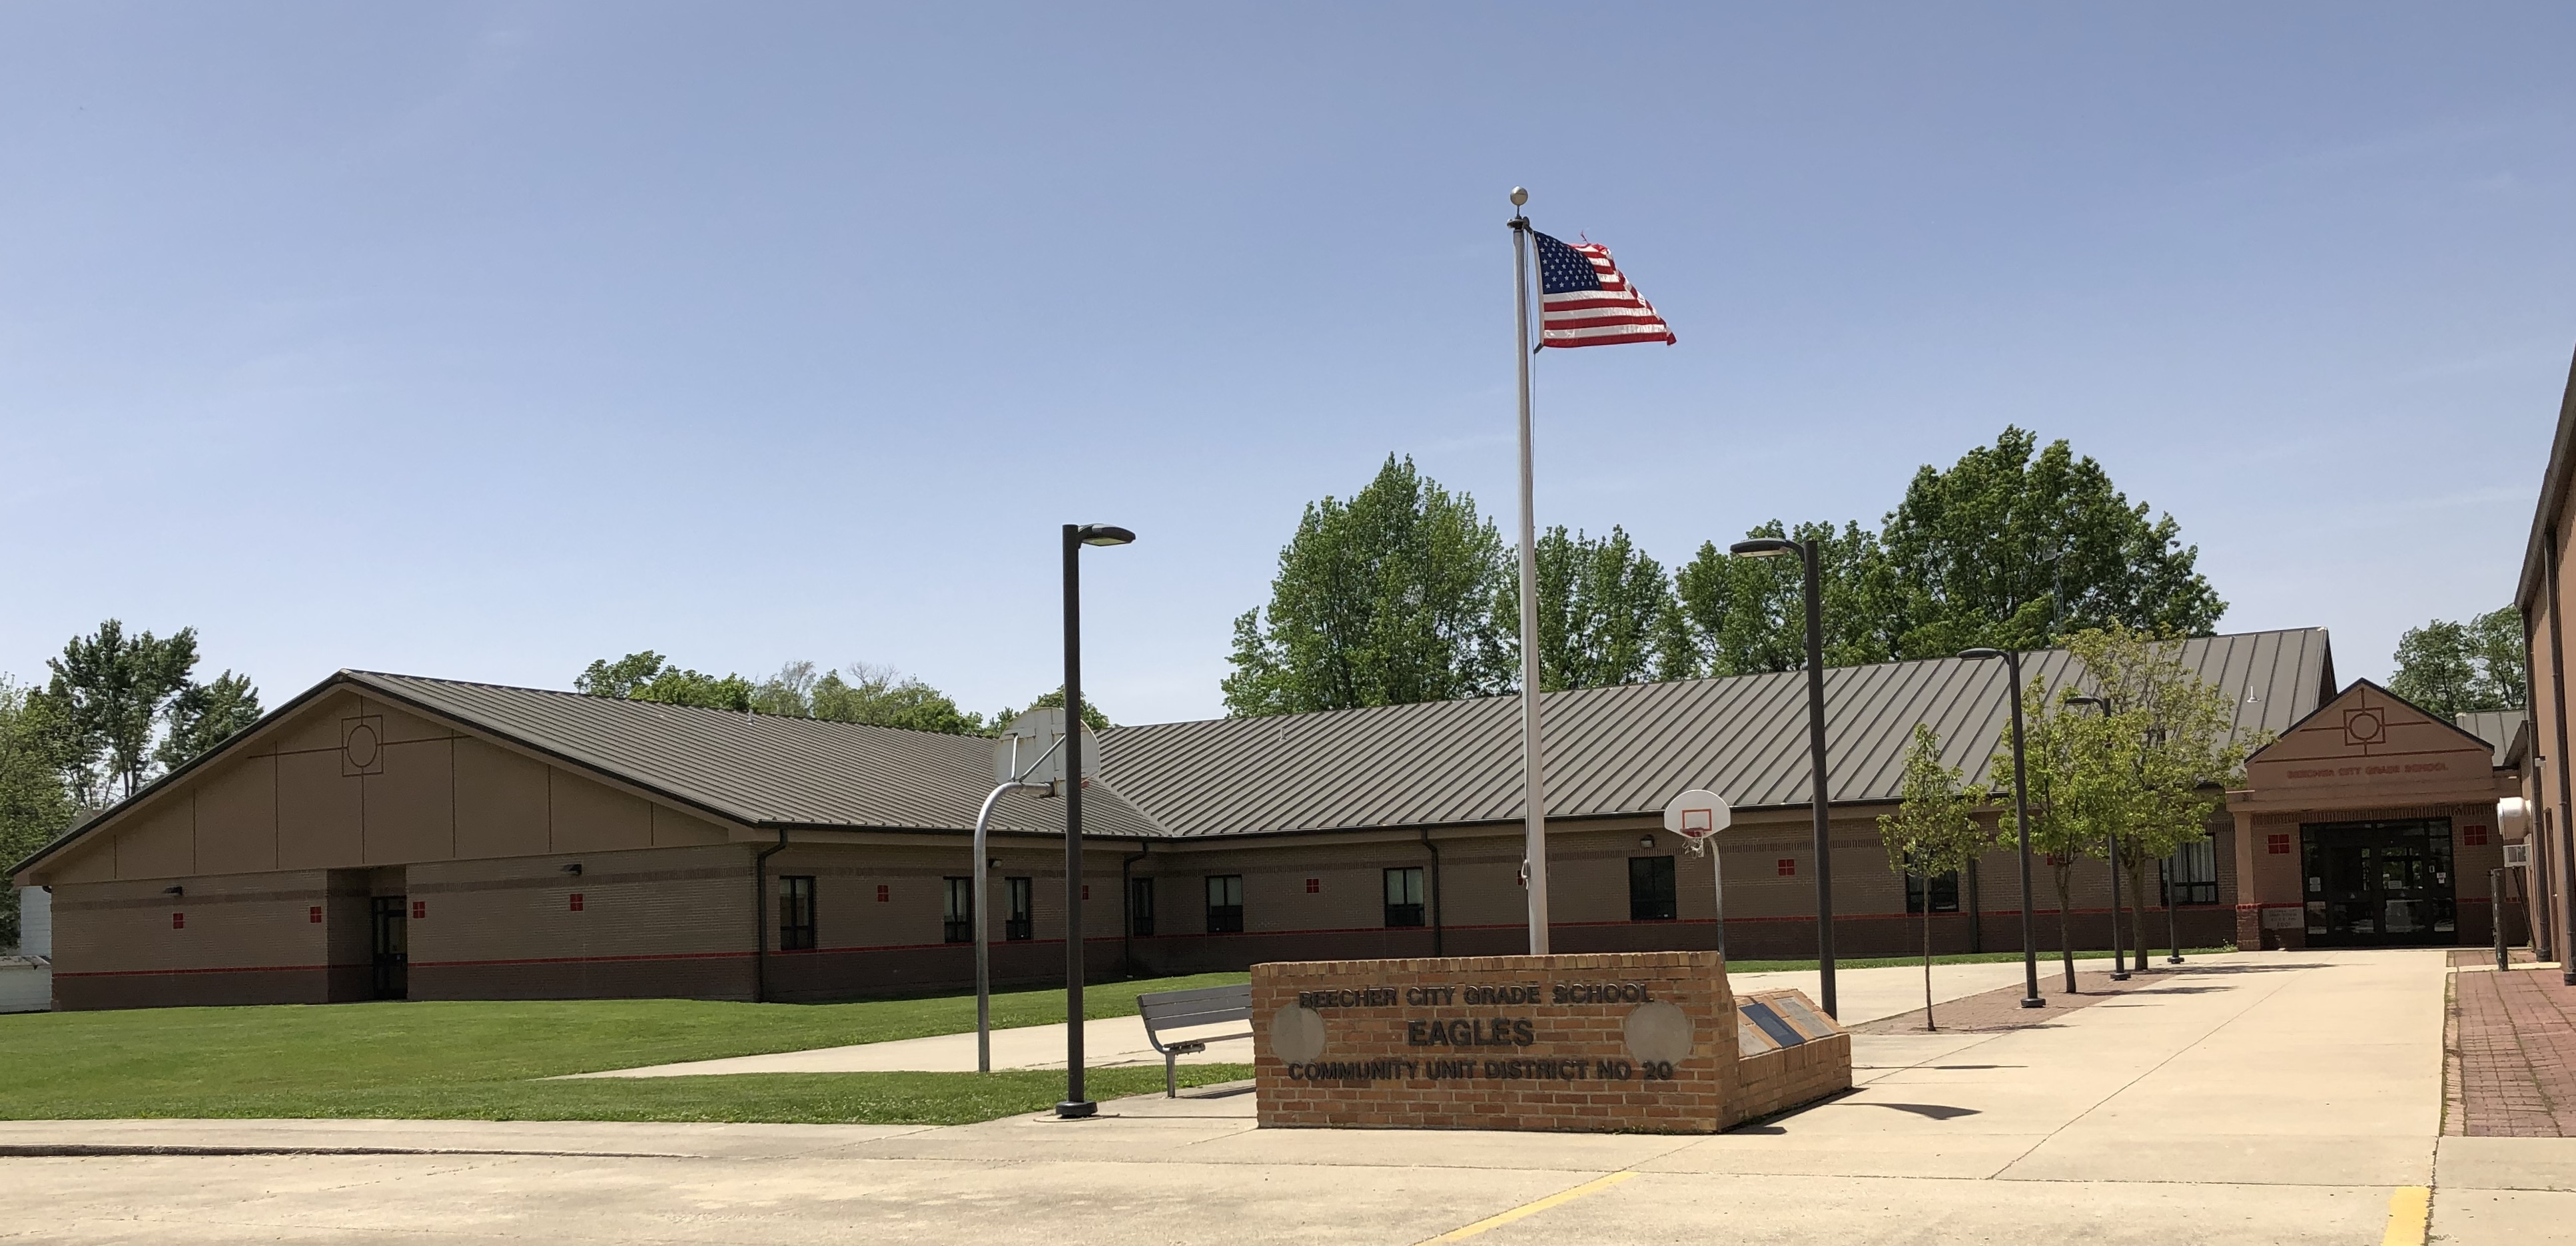 Beecher City Grade School